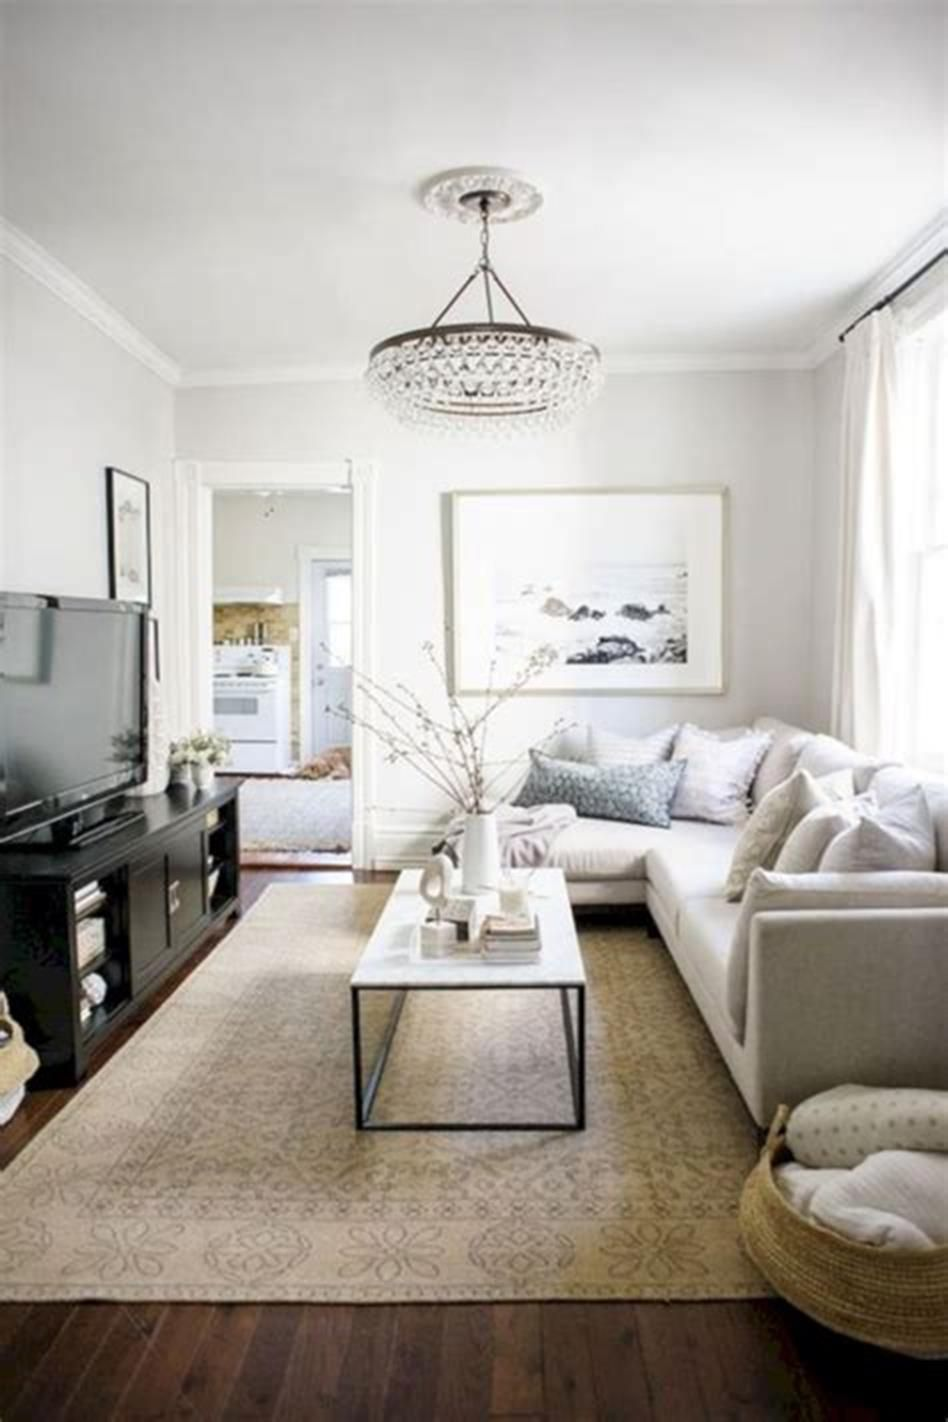 45 Simple Living Room Decorating Ideas On A Budget 2019 Elegant